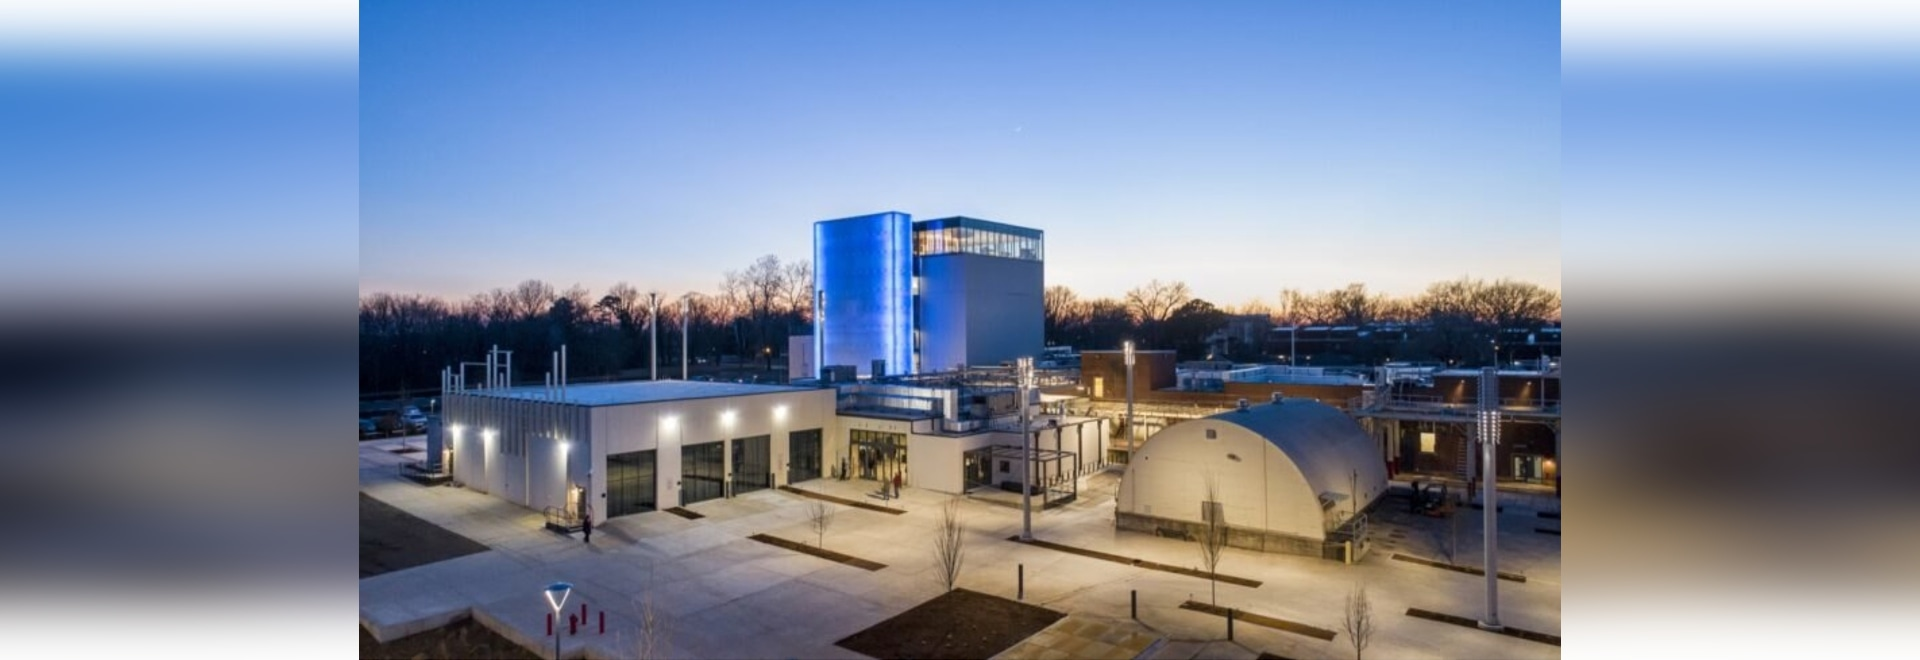 This modern art museum was once a cheese factory in Arkansas